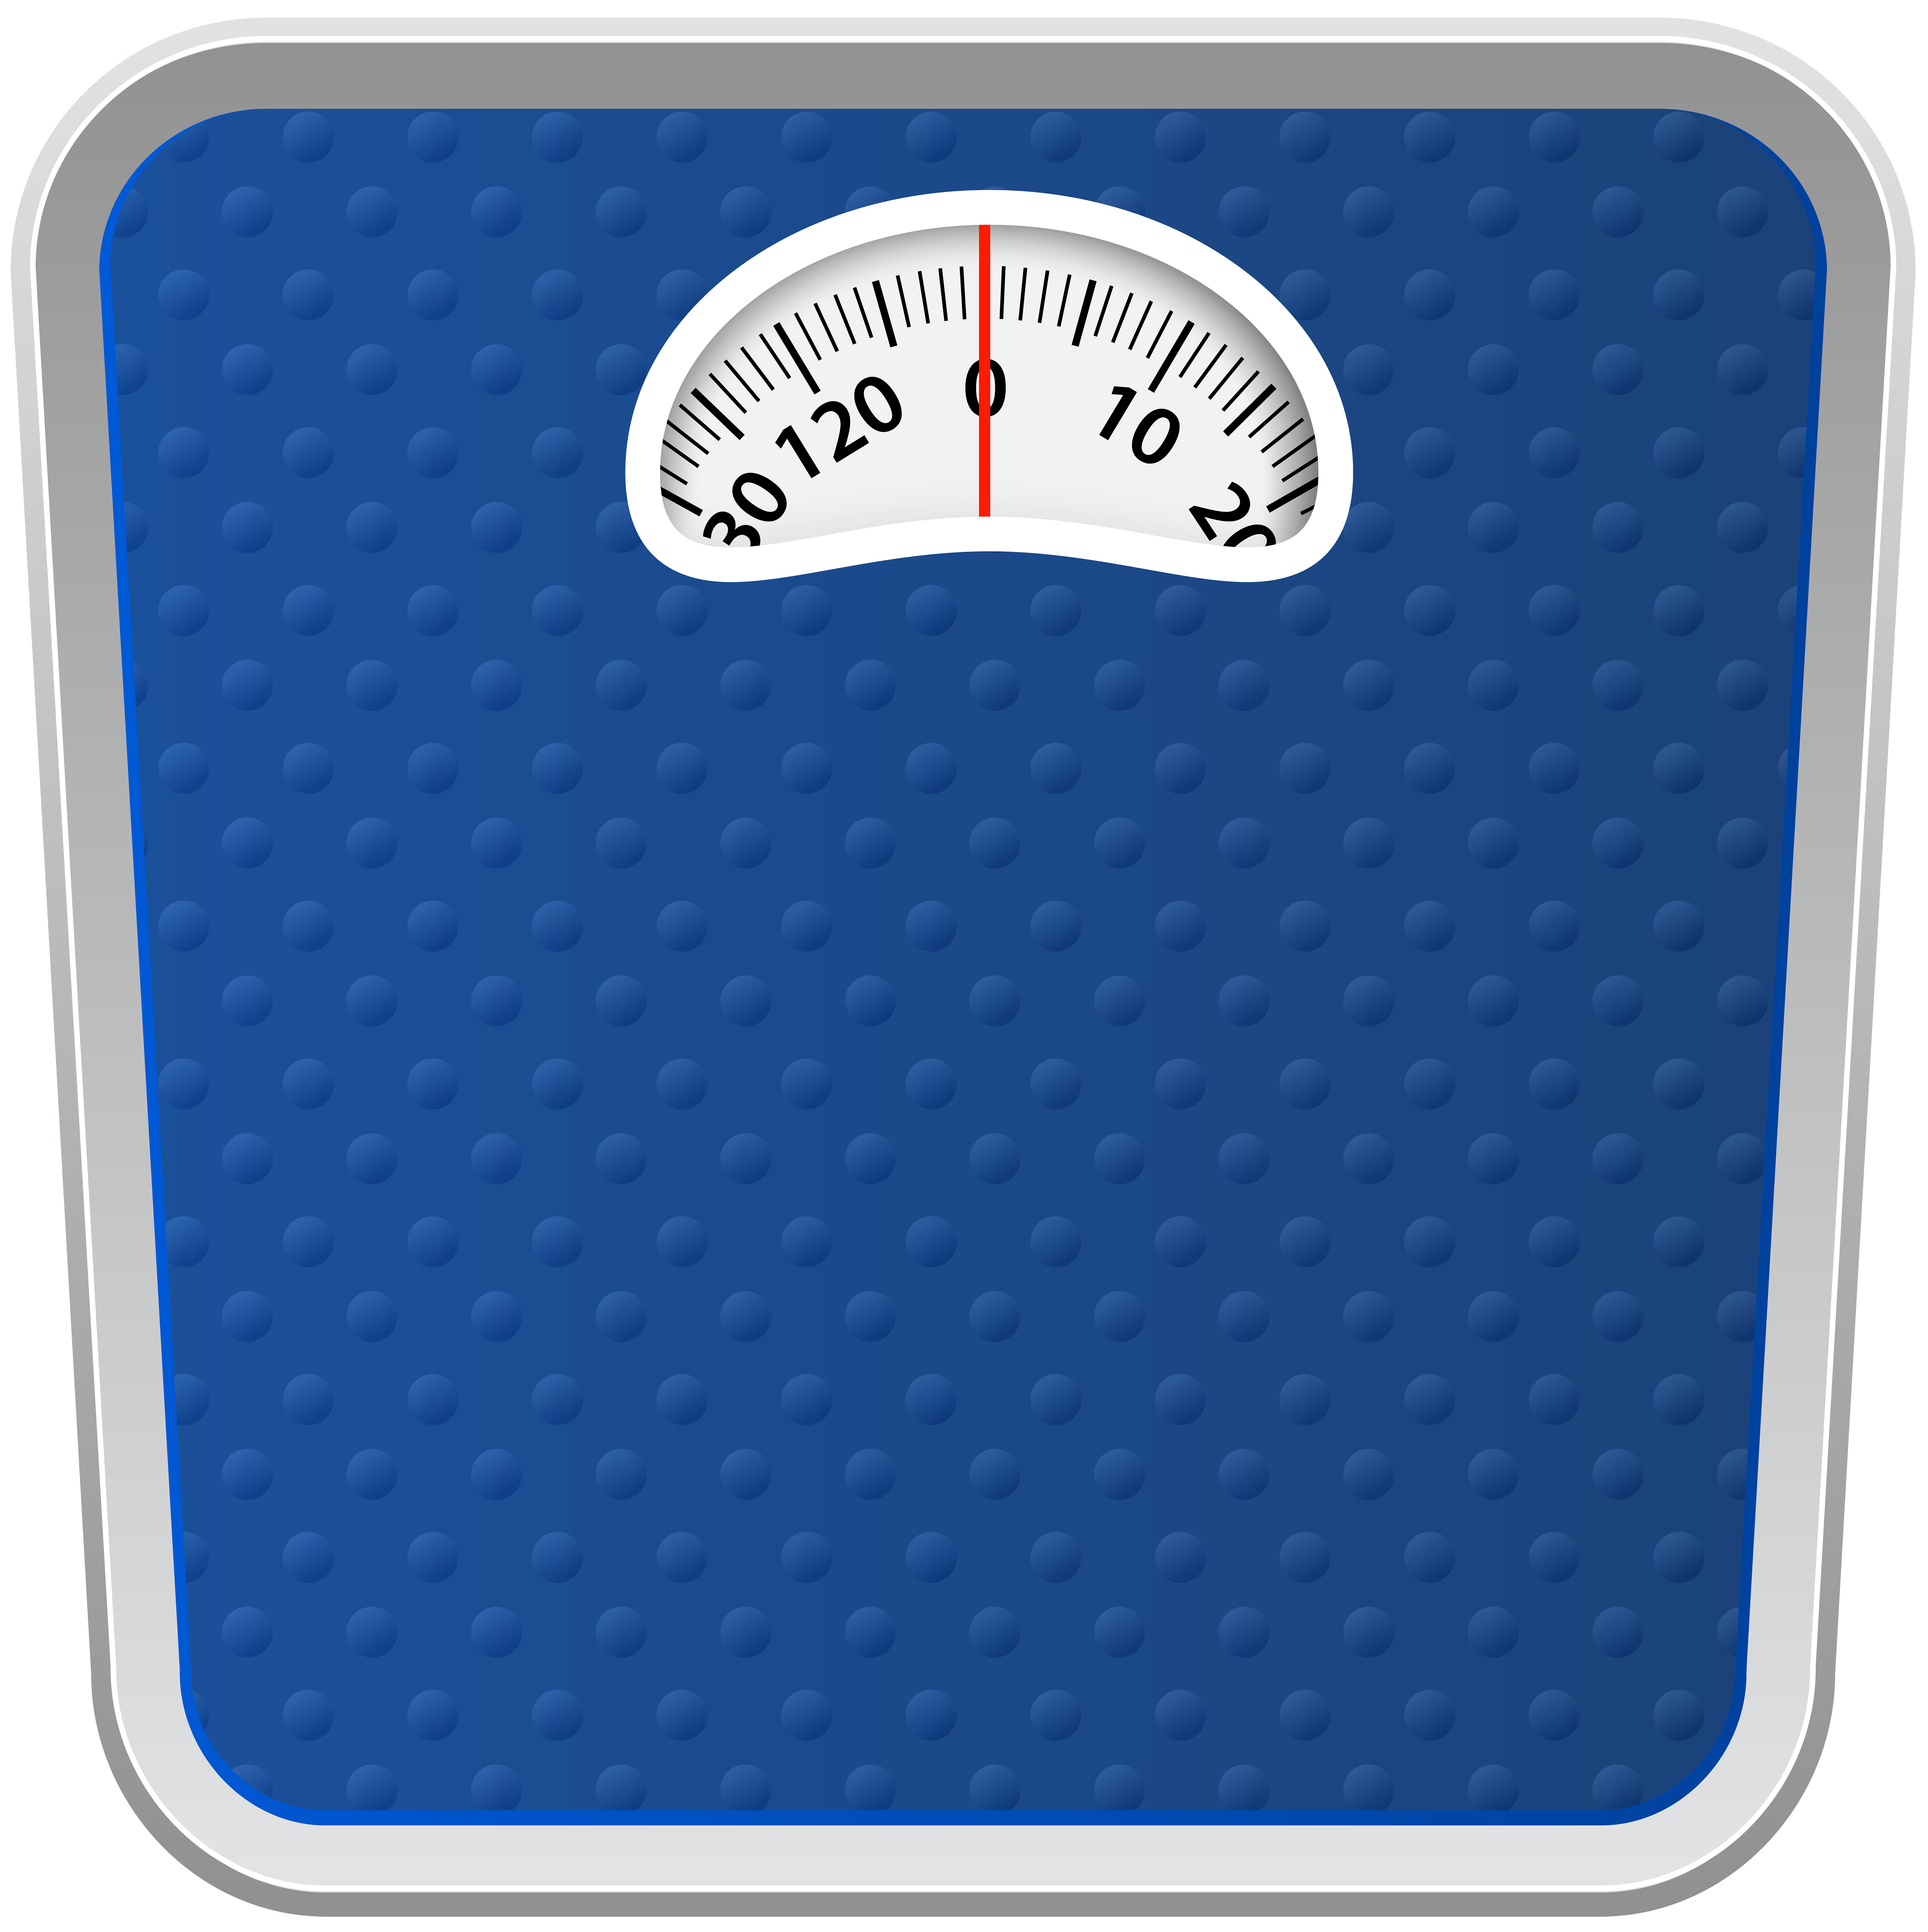 Scale clipart electric. Weighing transparent clip art